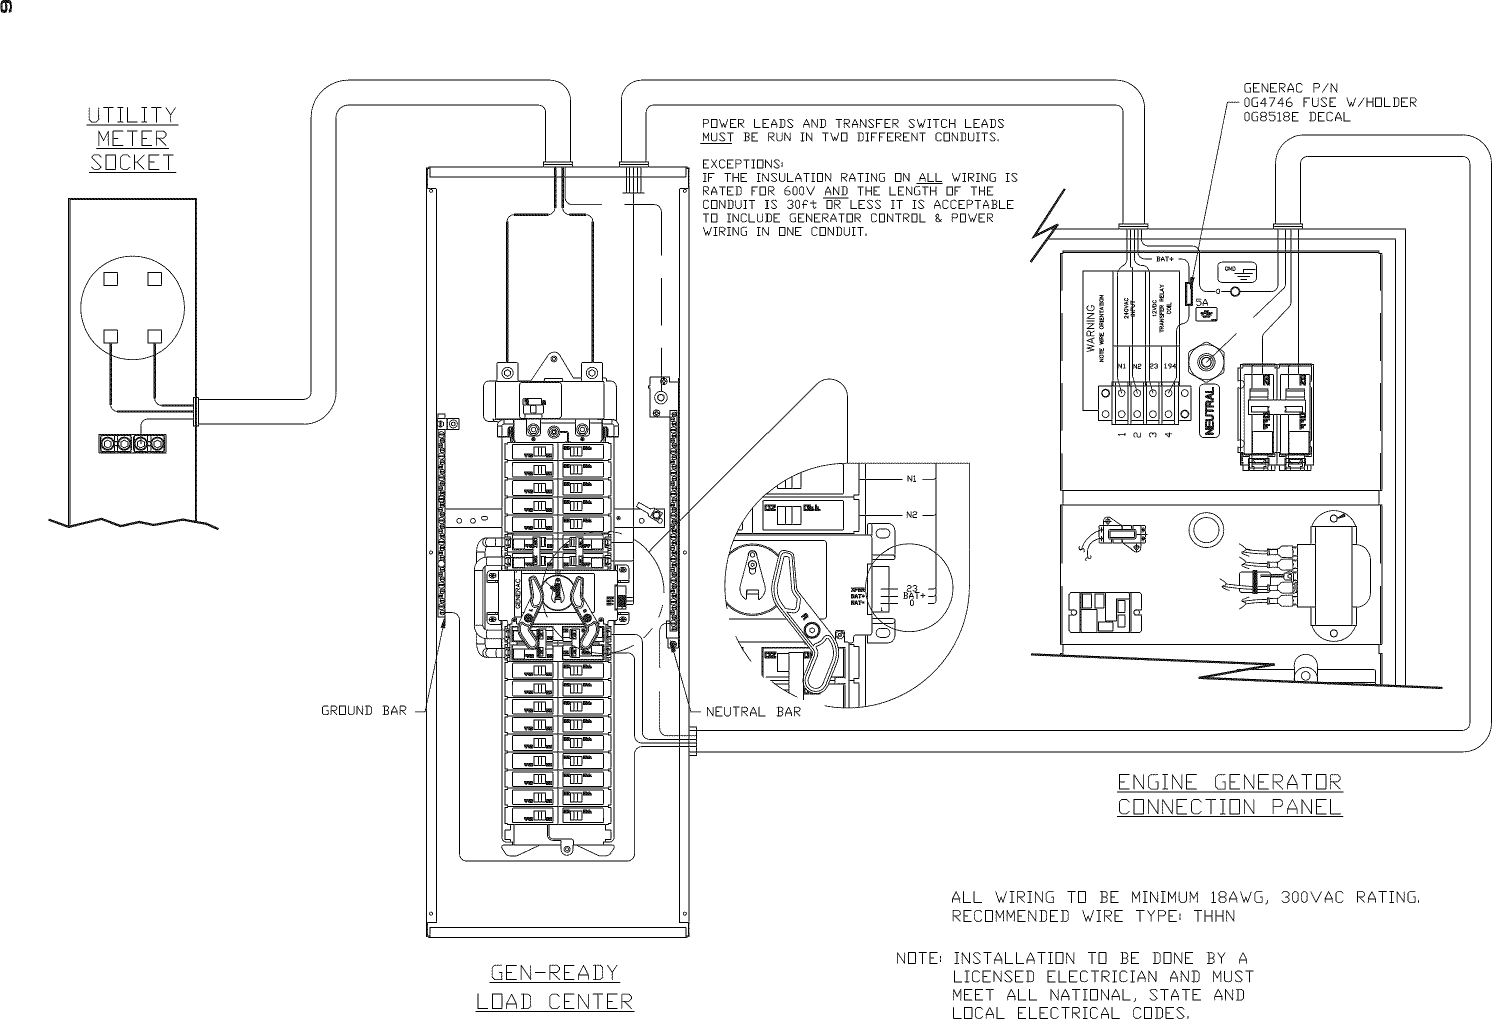 Carrier Controls And Hvac Accessories Manual L0810478 Drawing Notes Page 6 Of 8